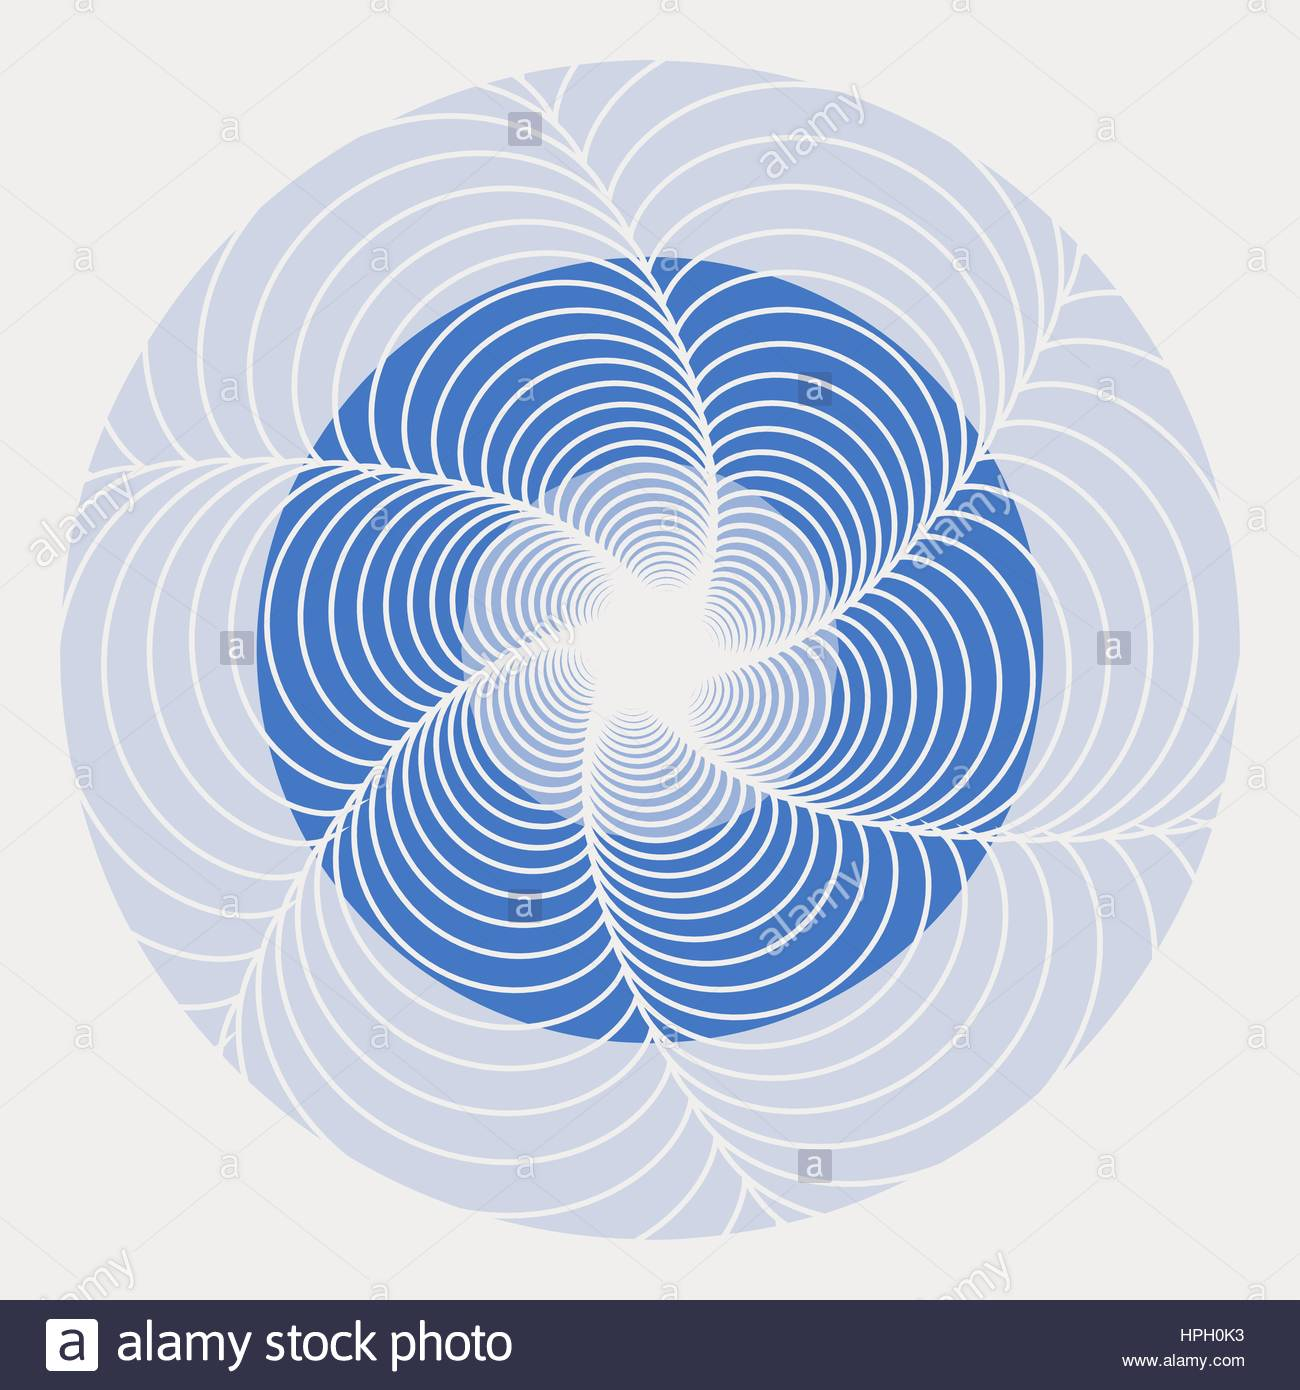 A graphic whirling flower in blue shades - Stock Vector